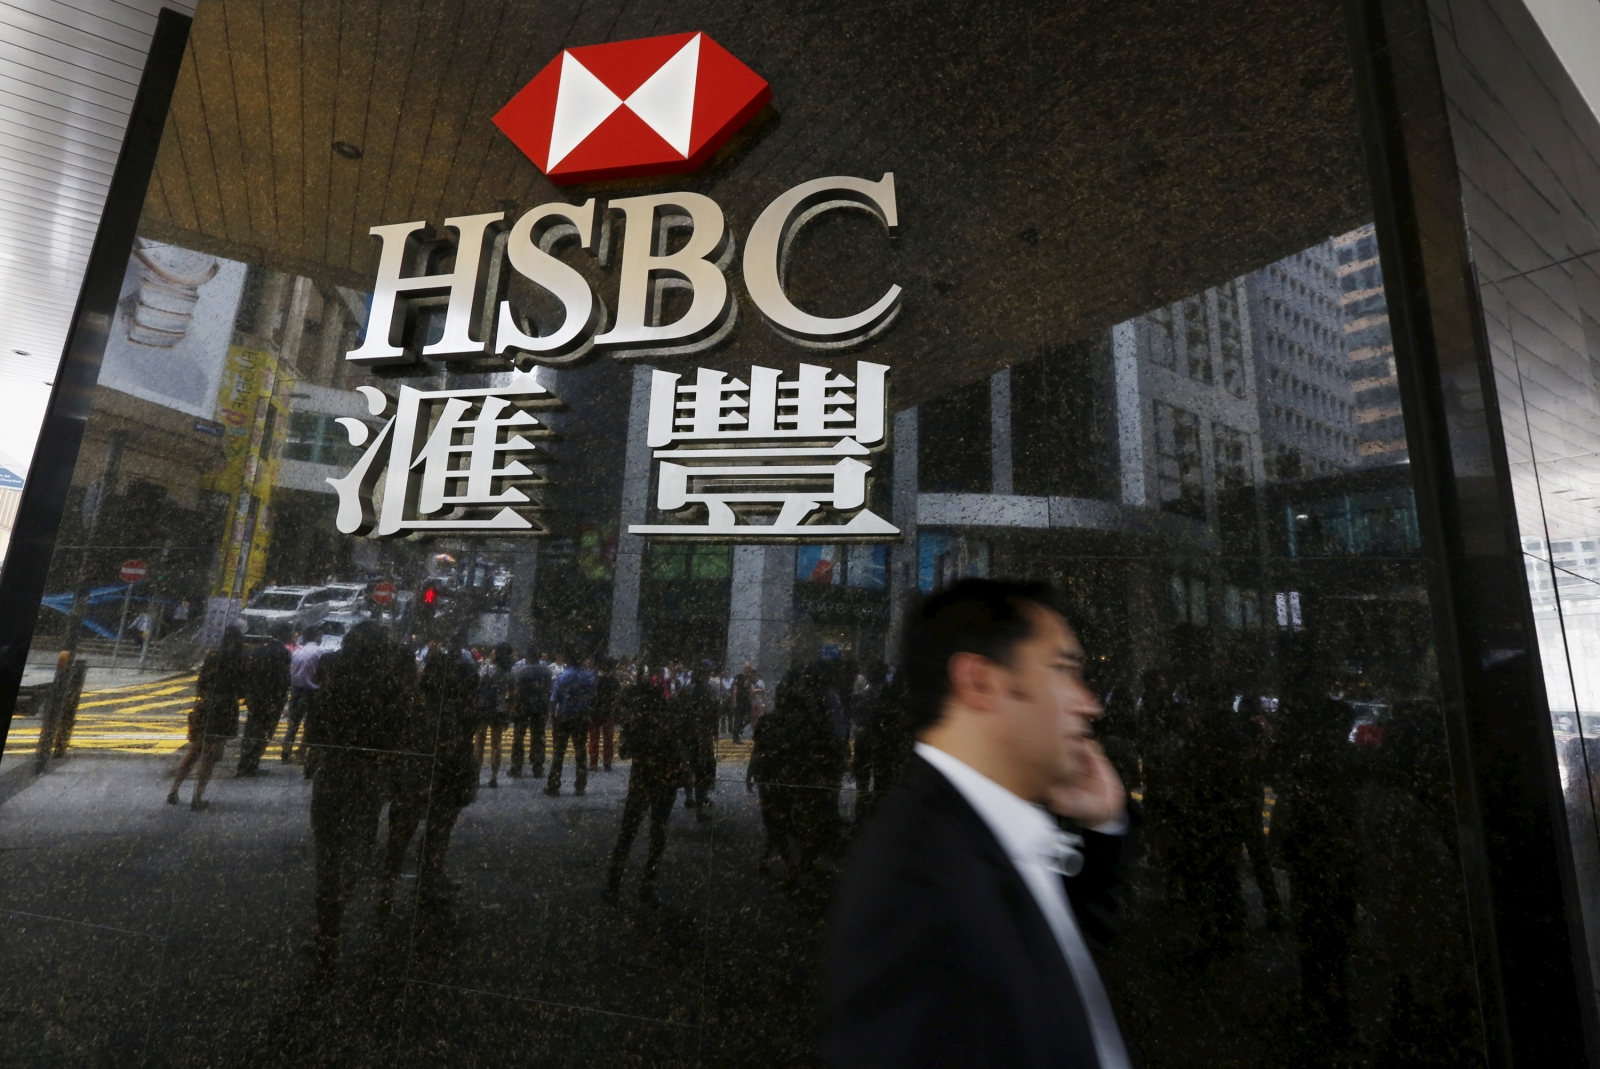 HSBC to pay $1.58bn to end a 14-year-old shareholder class action lawsuit in the US